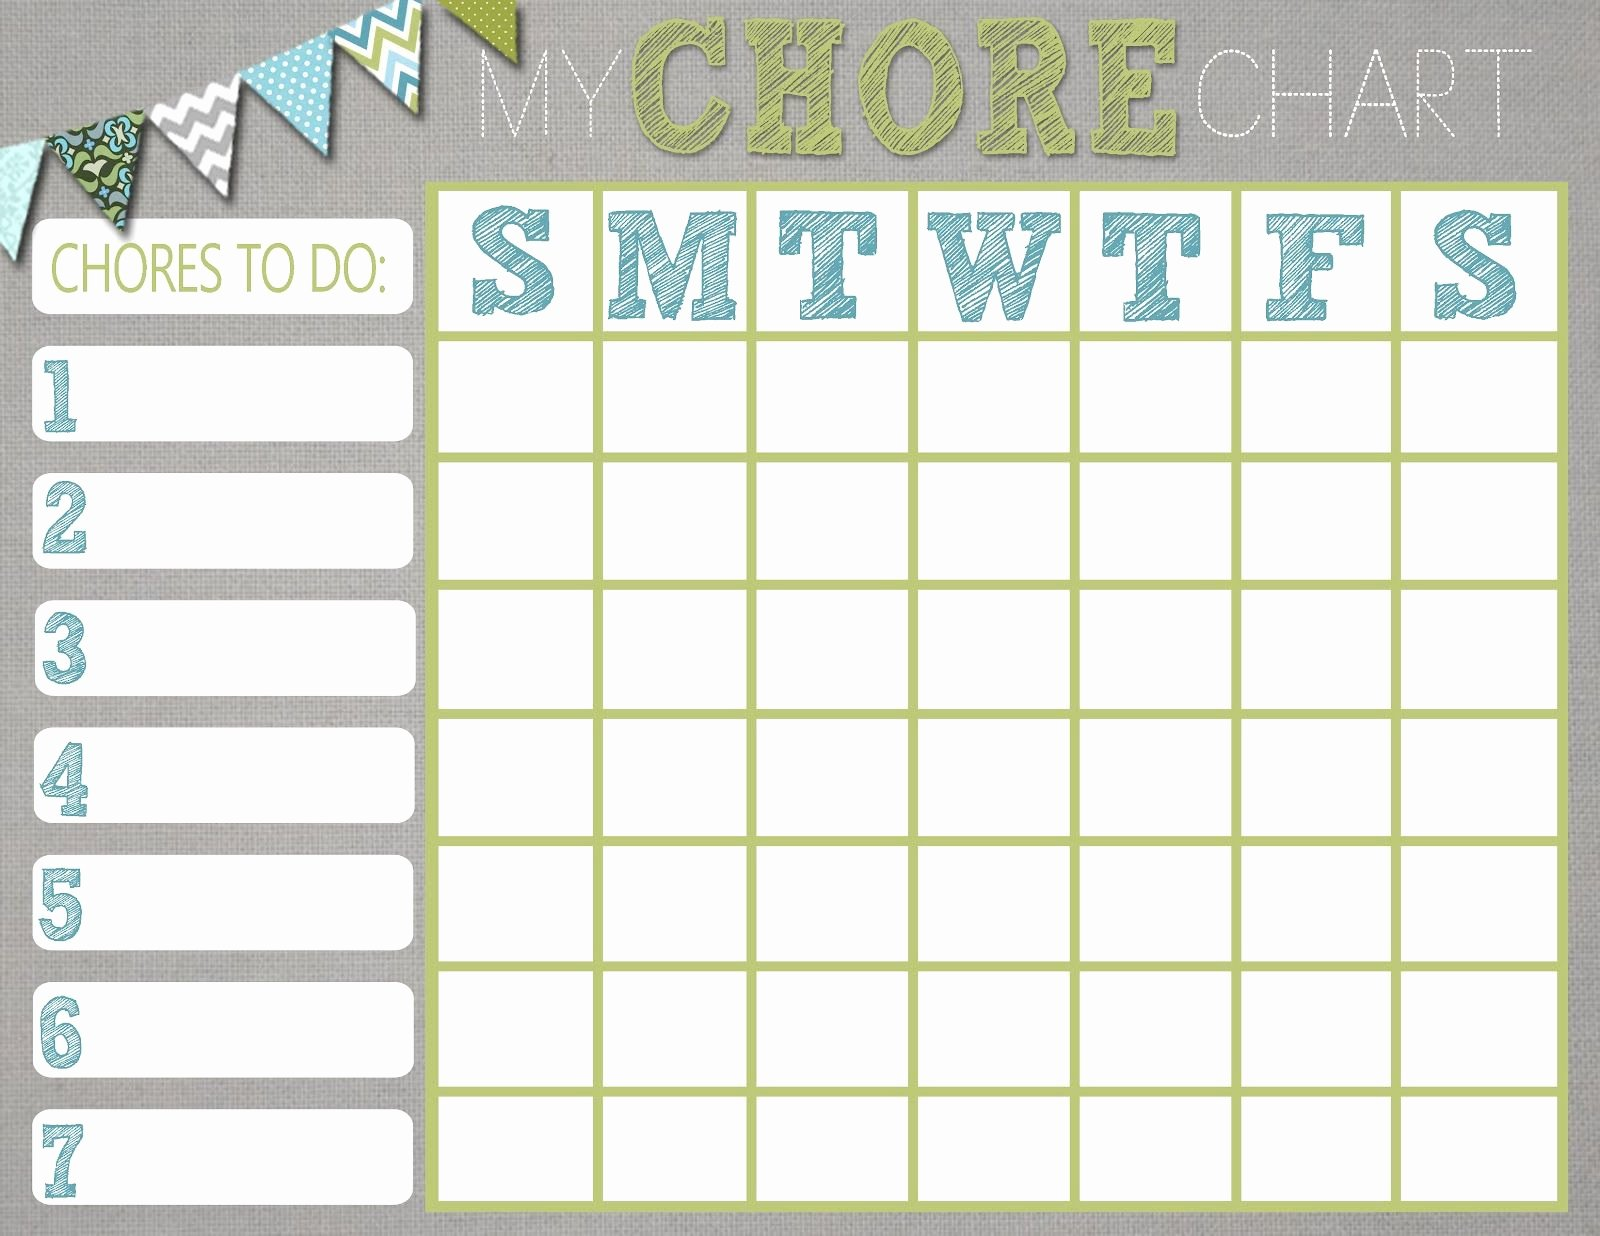 Chore Chart Template Google Search